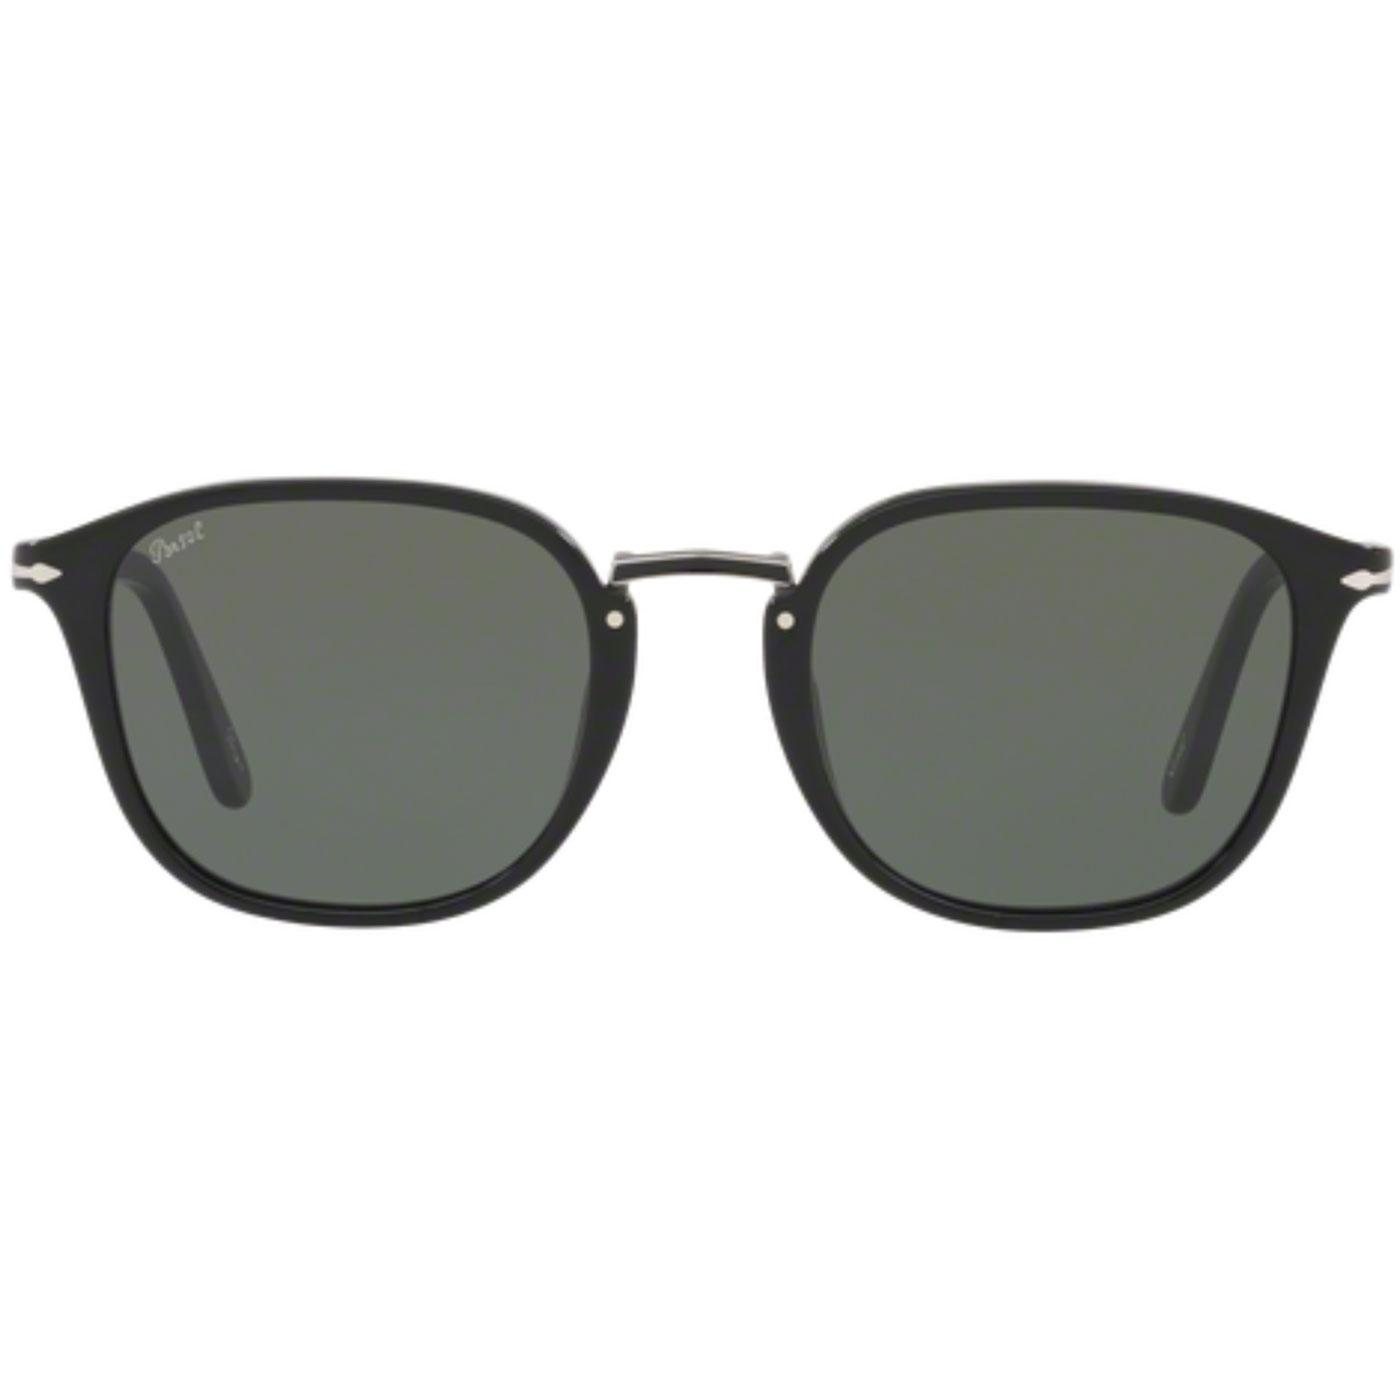 Combo Evolution PERSOL Men's Retro Sunglasses Blk